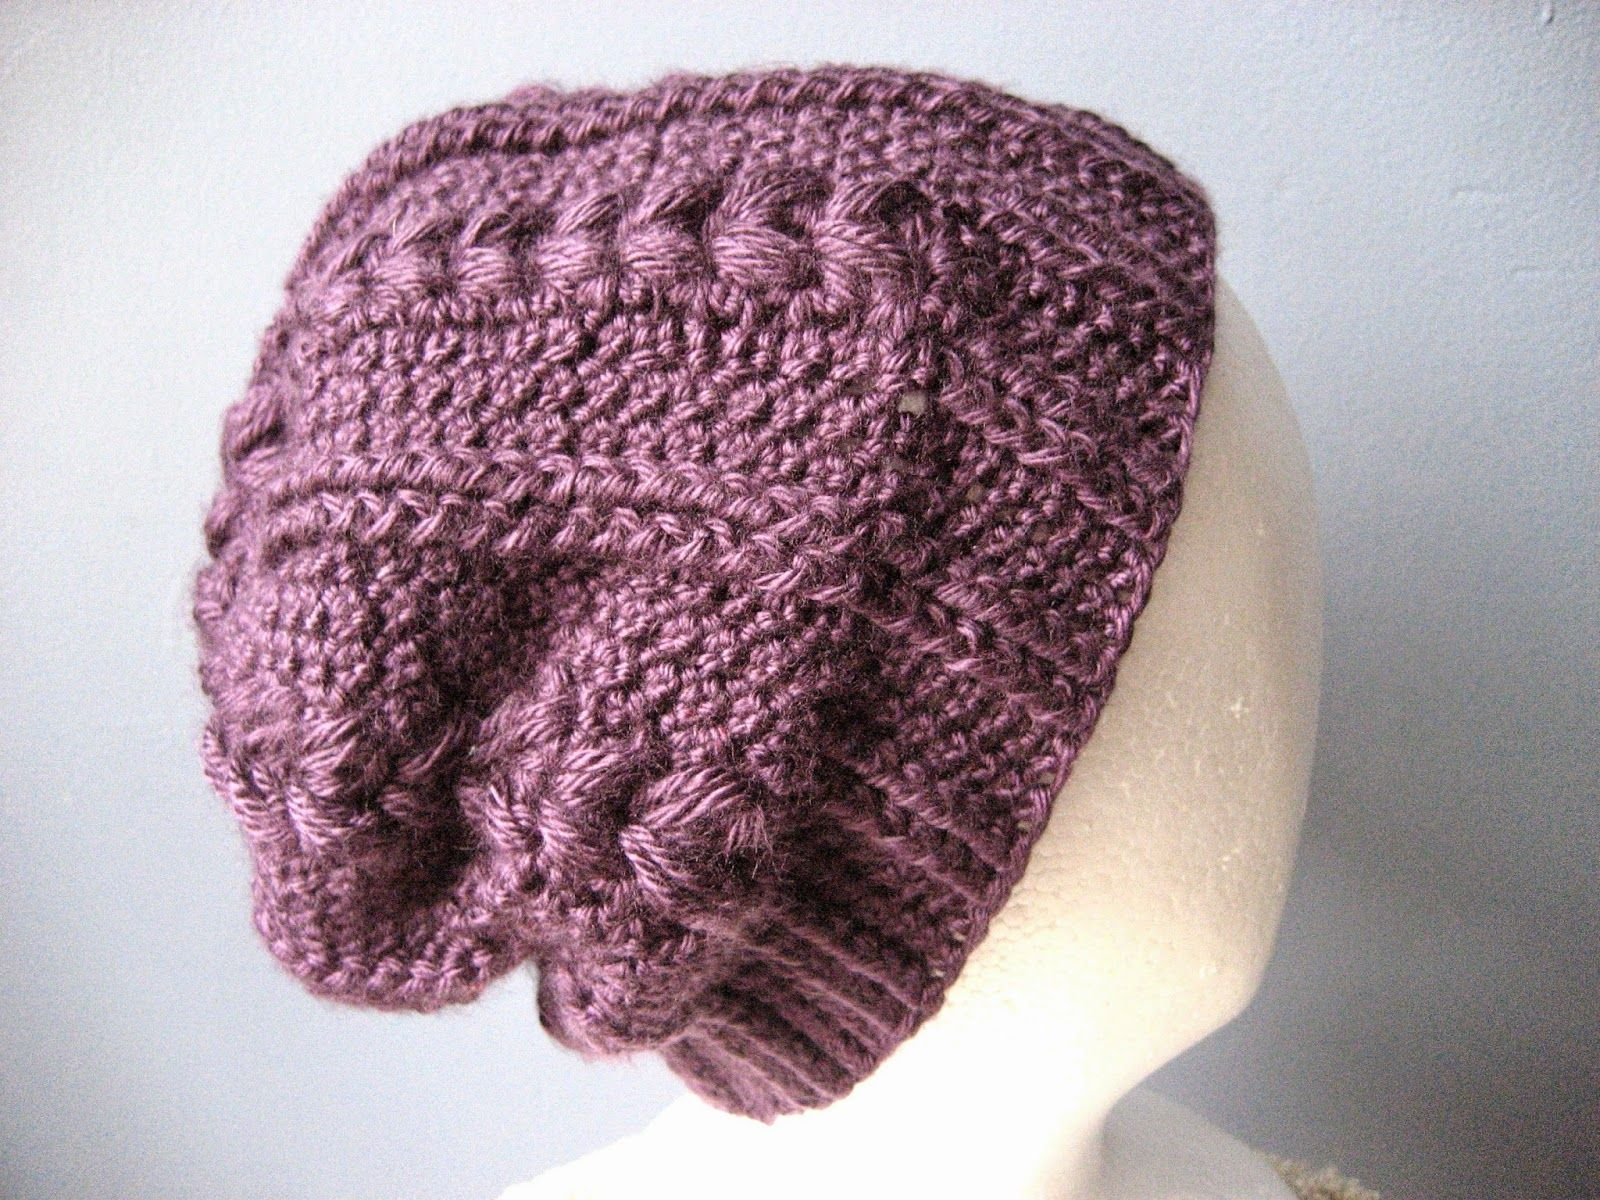 Since I already had some purple yarn out for that owl hat, I figured ...